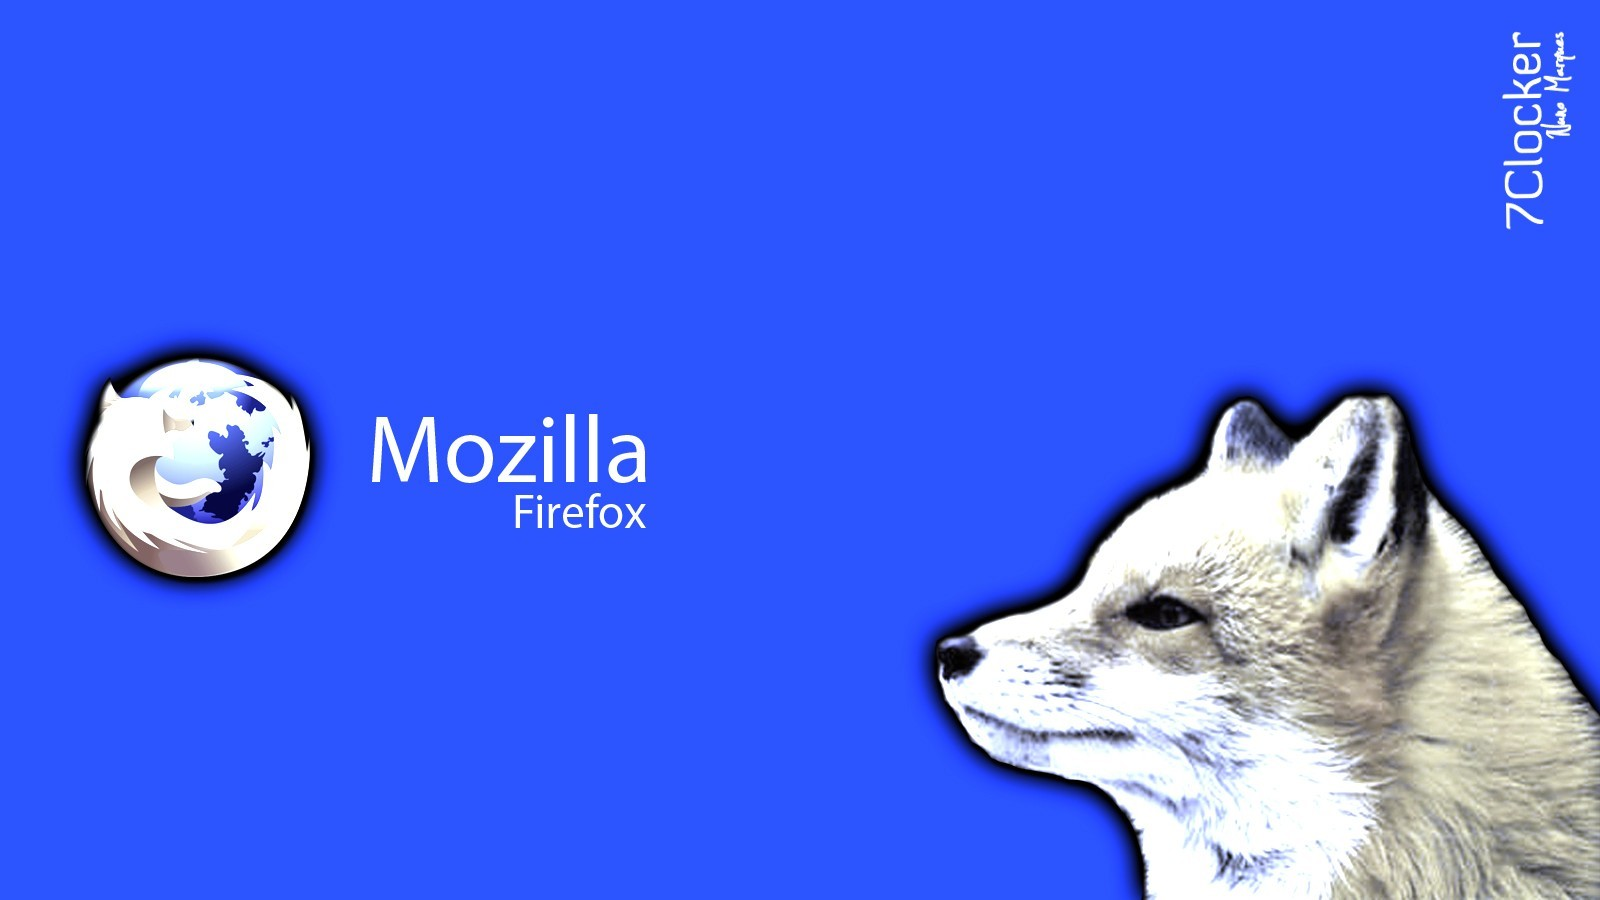 mozilla logos HD Wallpaper